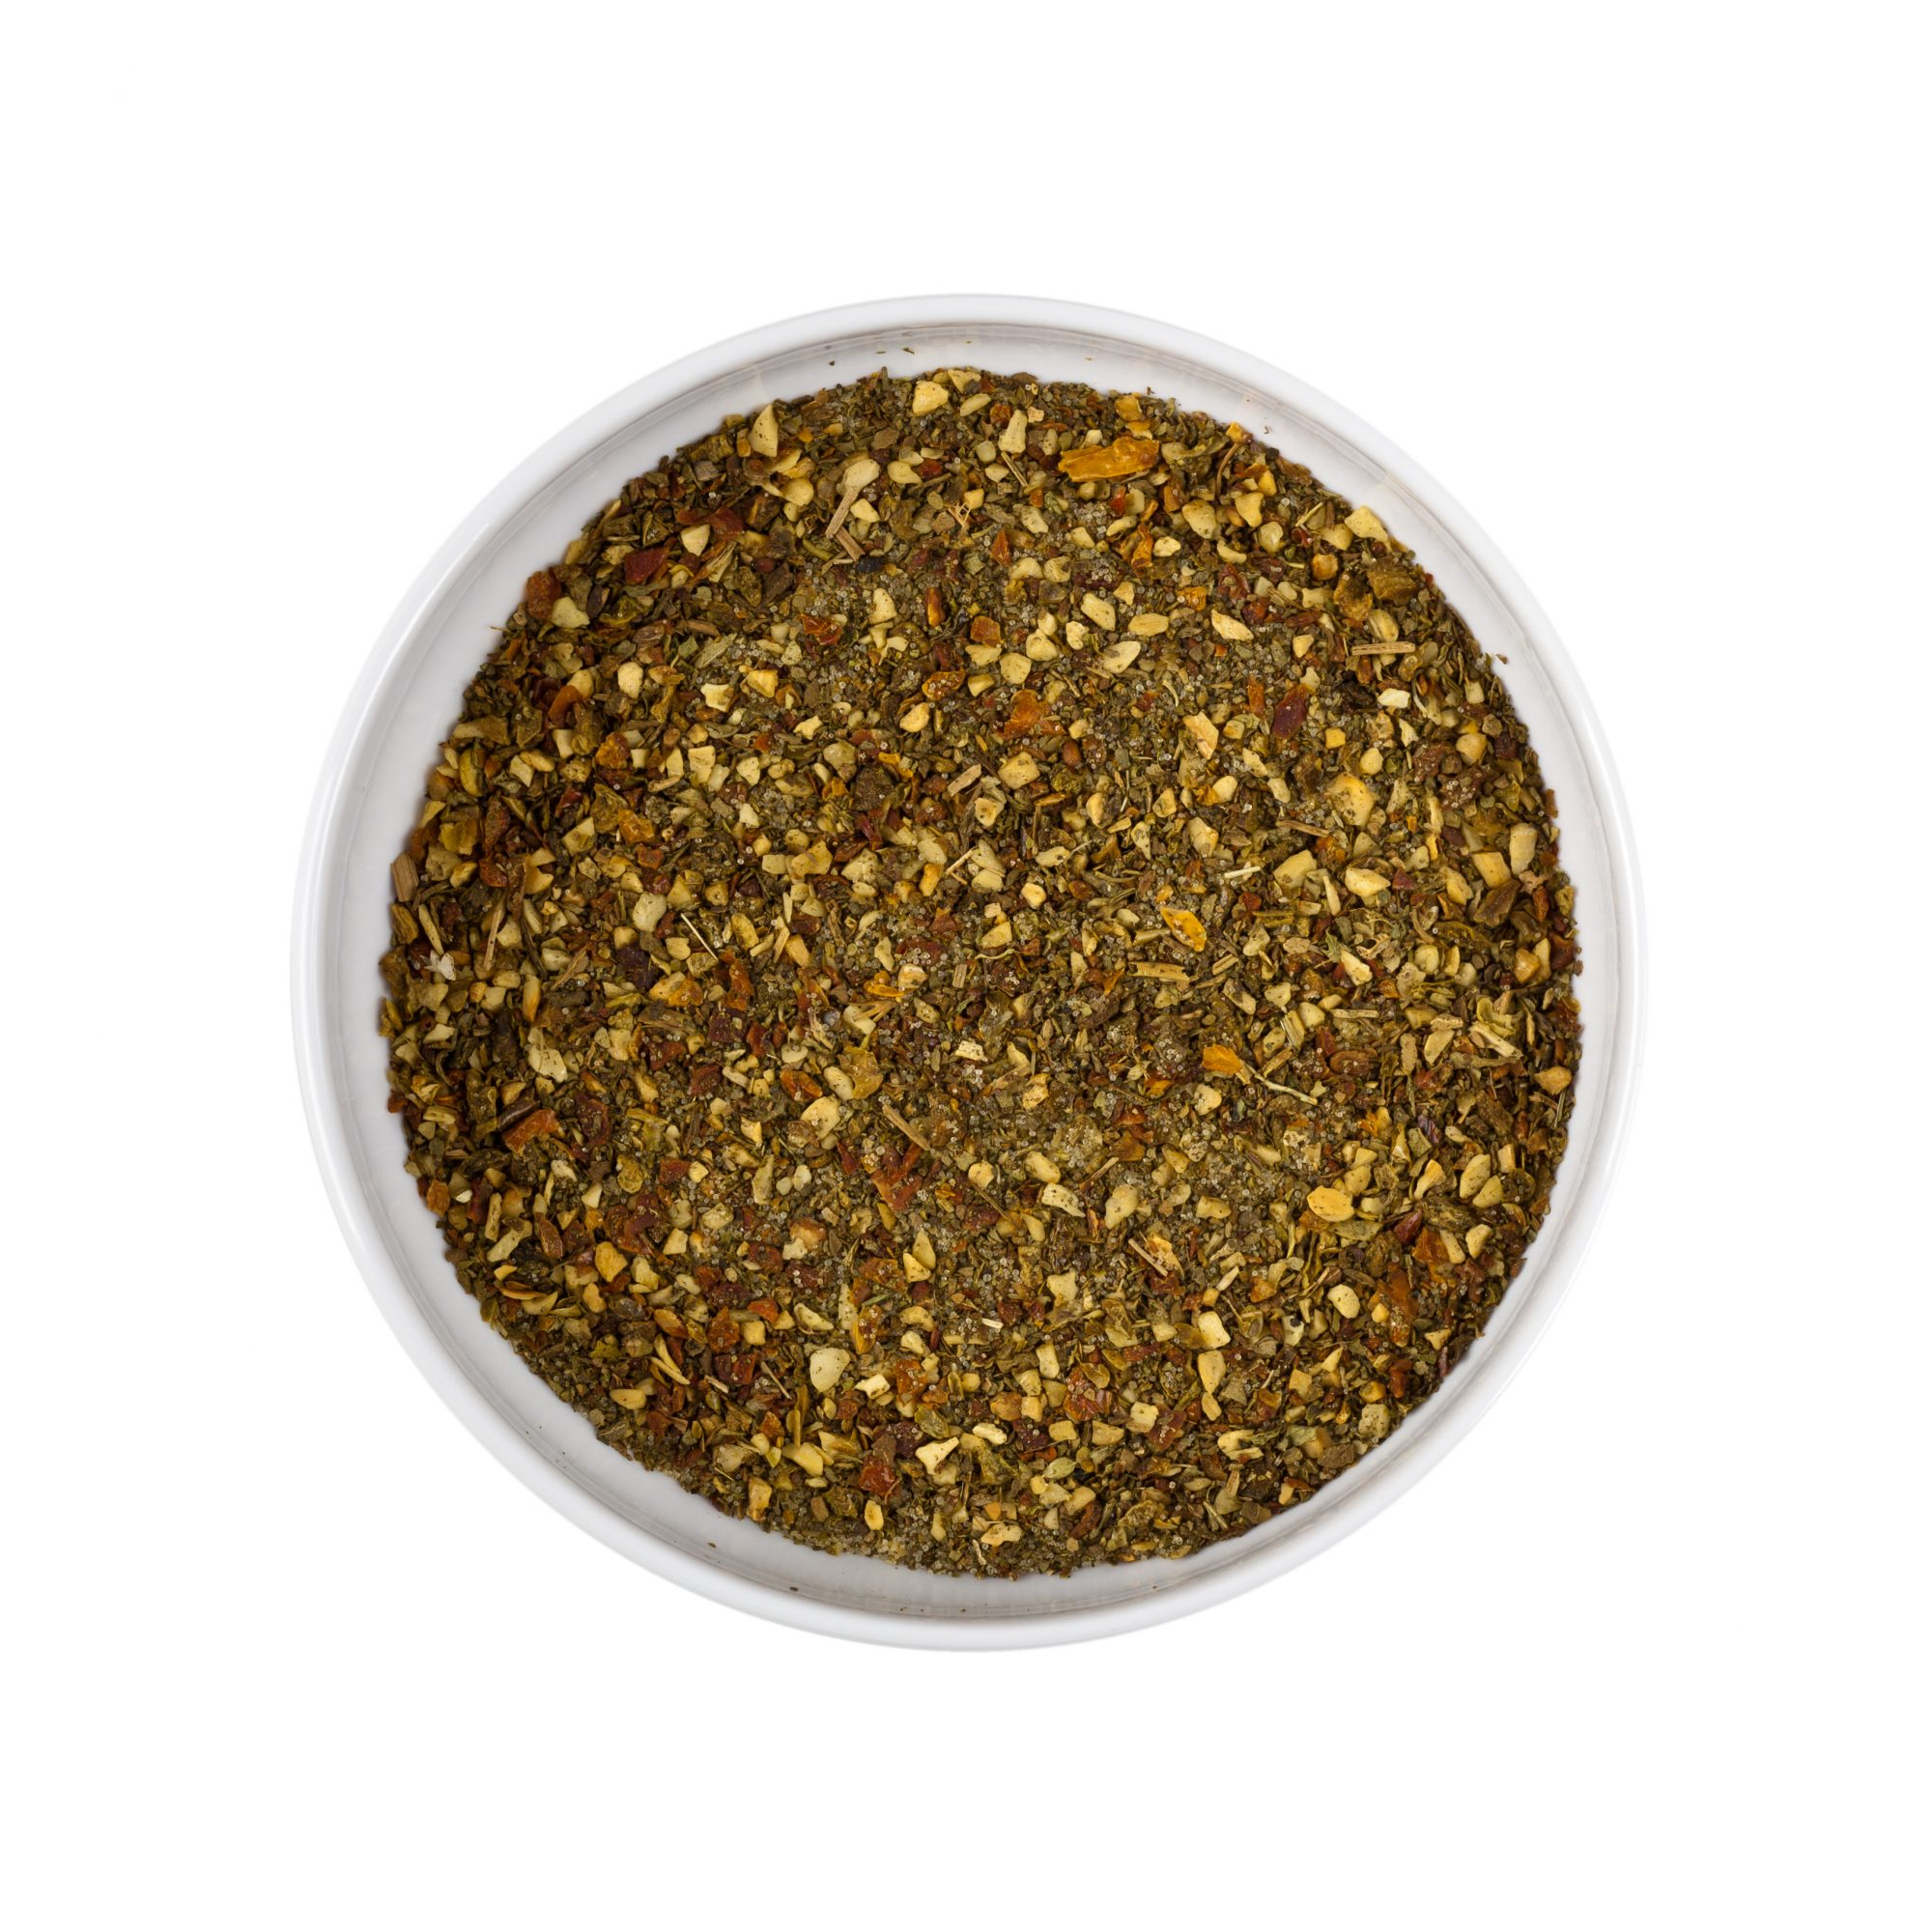 getty-spice-blend-image